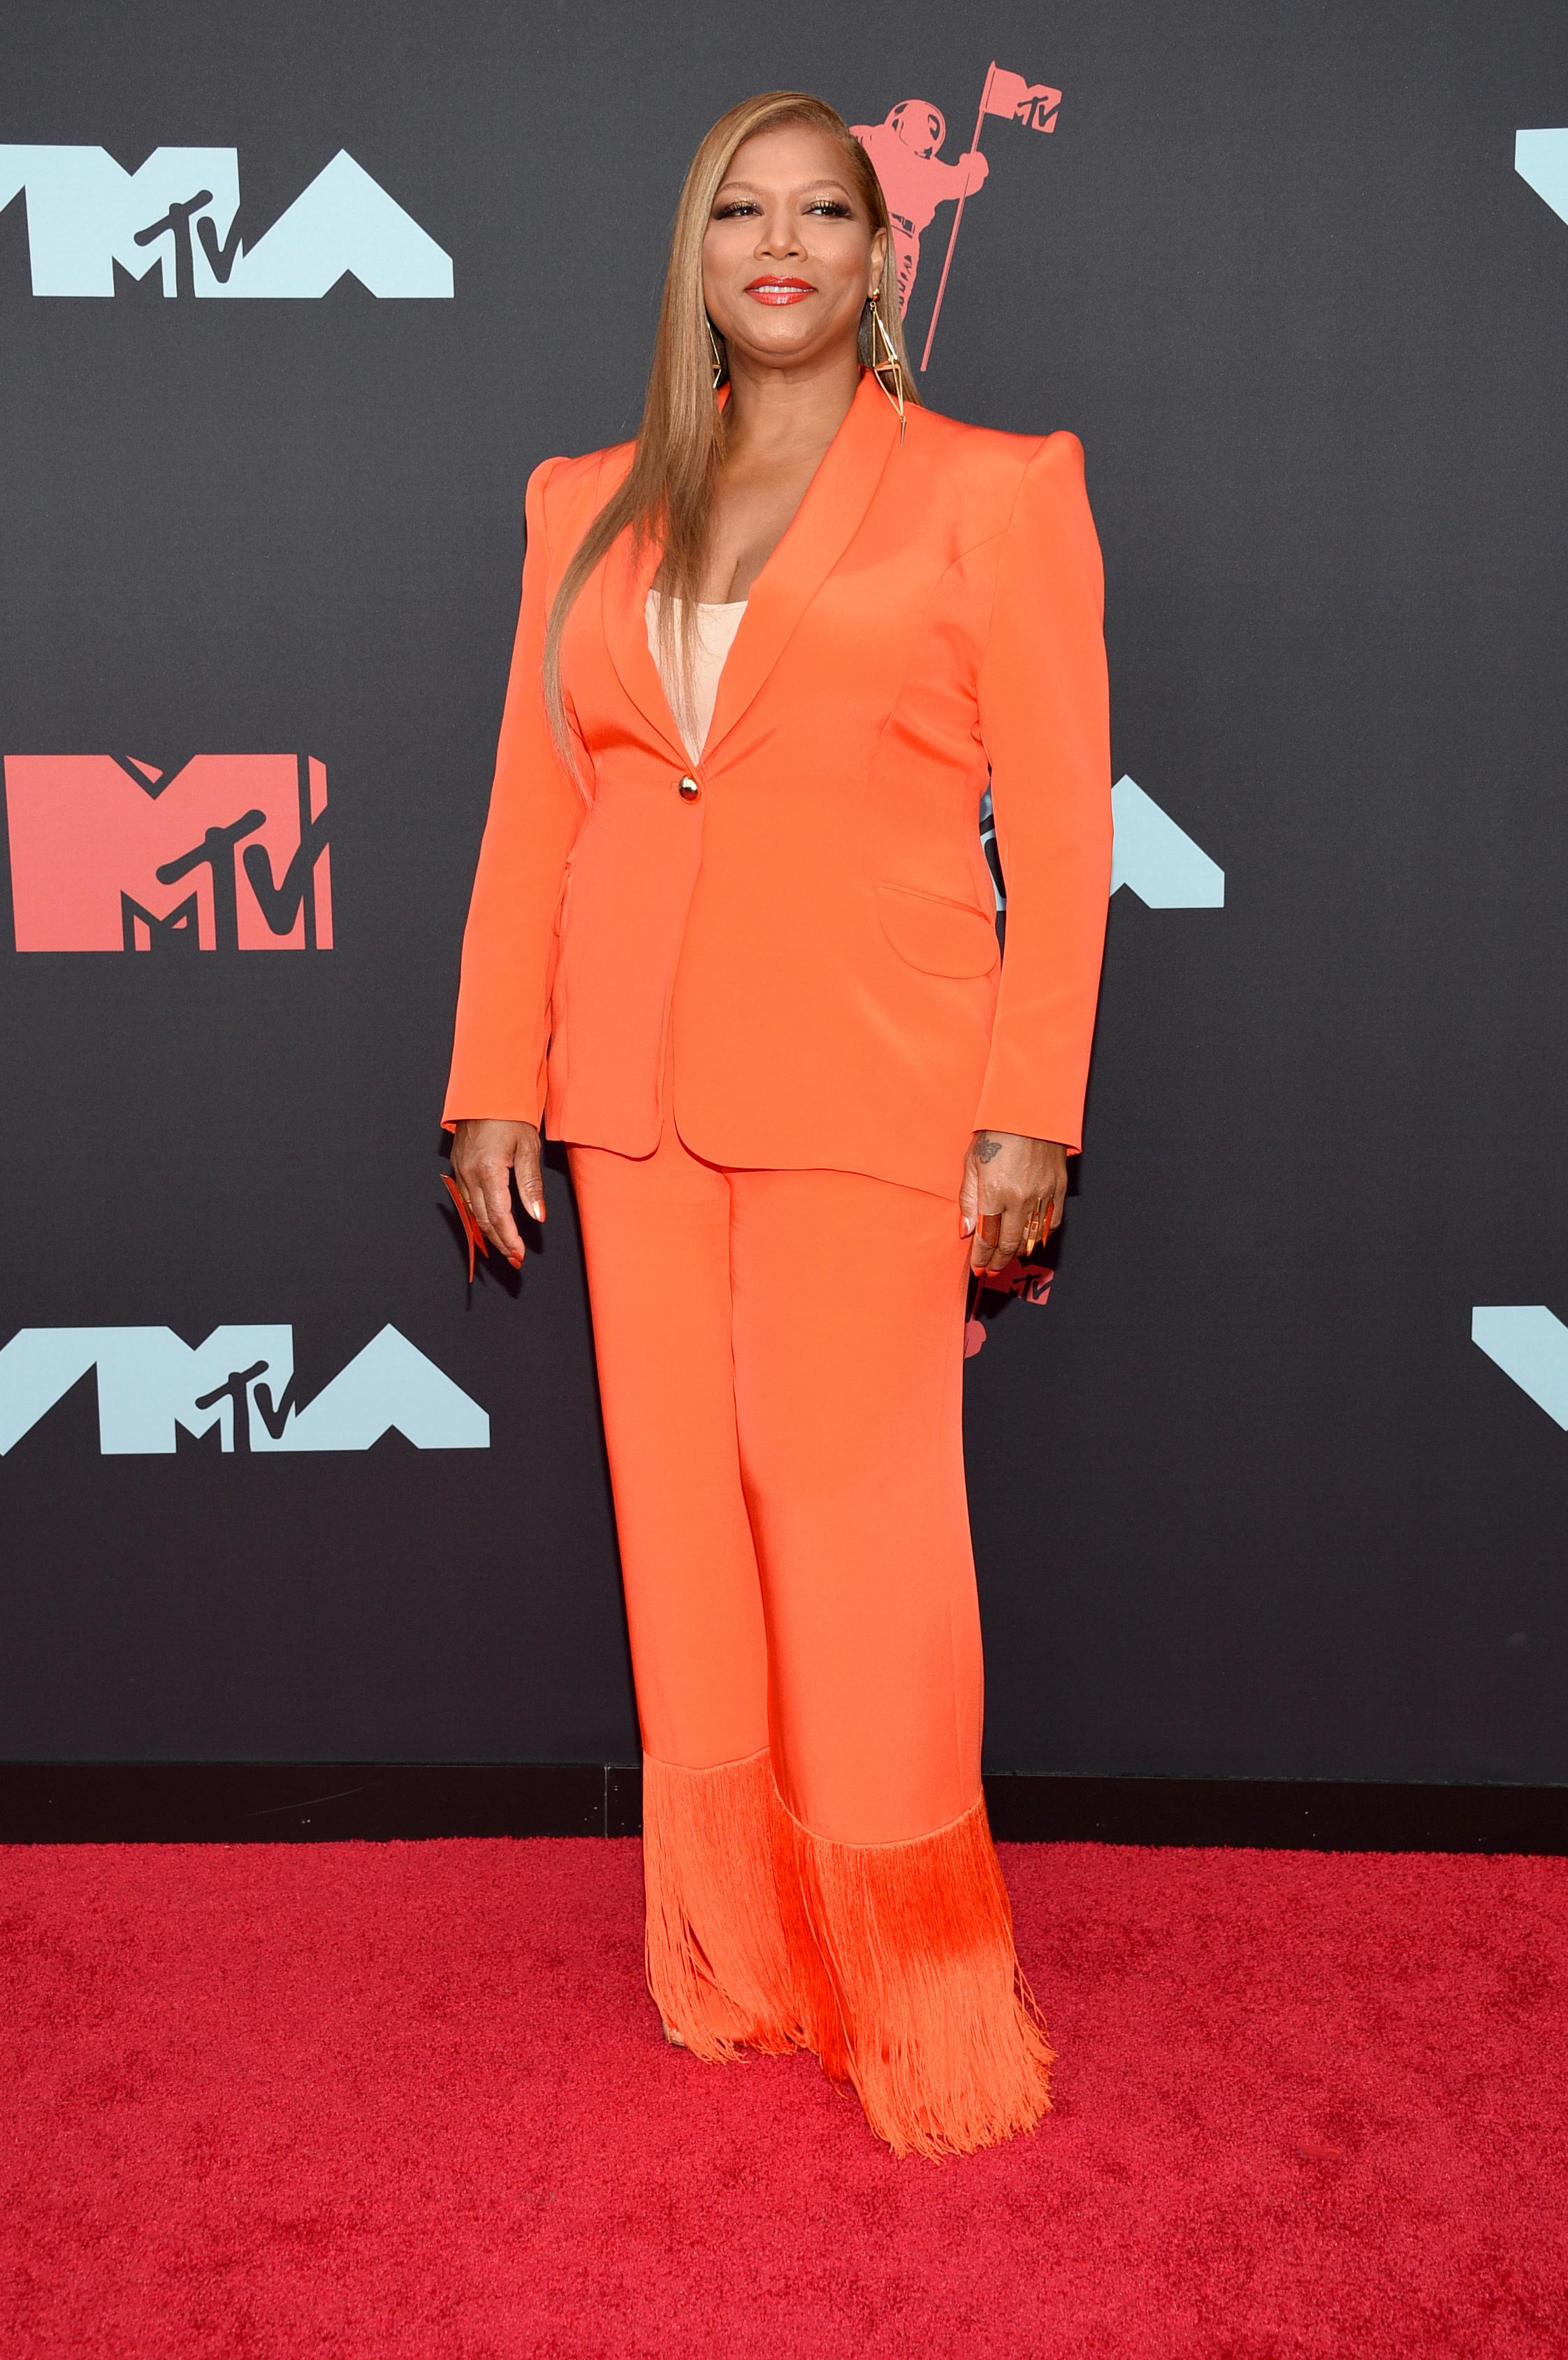 Queen Latifah arrives at the MTV Video Music Awards at the Prudential Center on Monday, Aug. 26, 2019, in Newark, N.J. (Photo by Evan Agostini/Invision/AP)